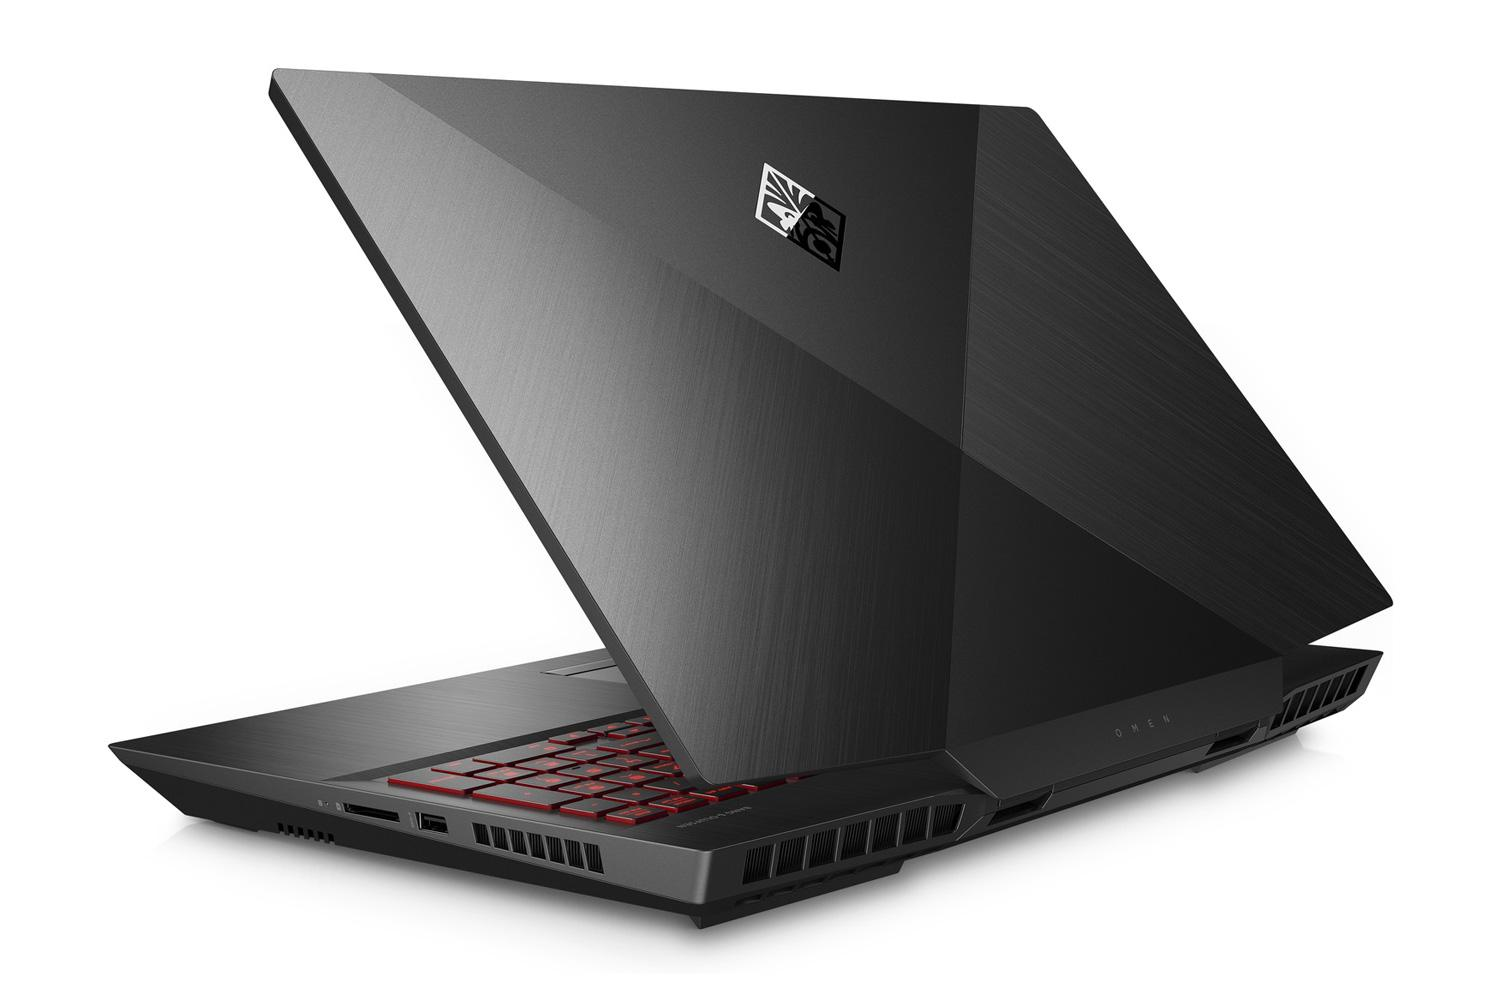 Ordinateur portable HP Omen 17-cb0037nf - Core i9, RTX 2080, IPS 144Hz, SSD Optane H10 - photo 4